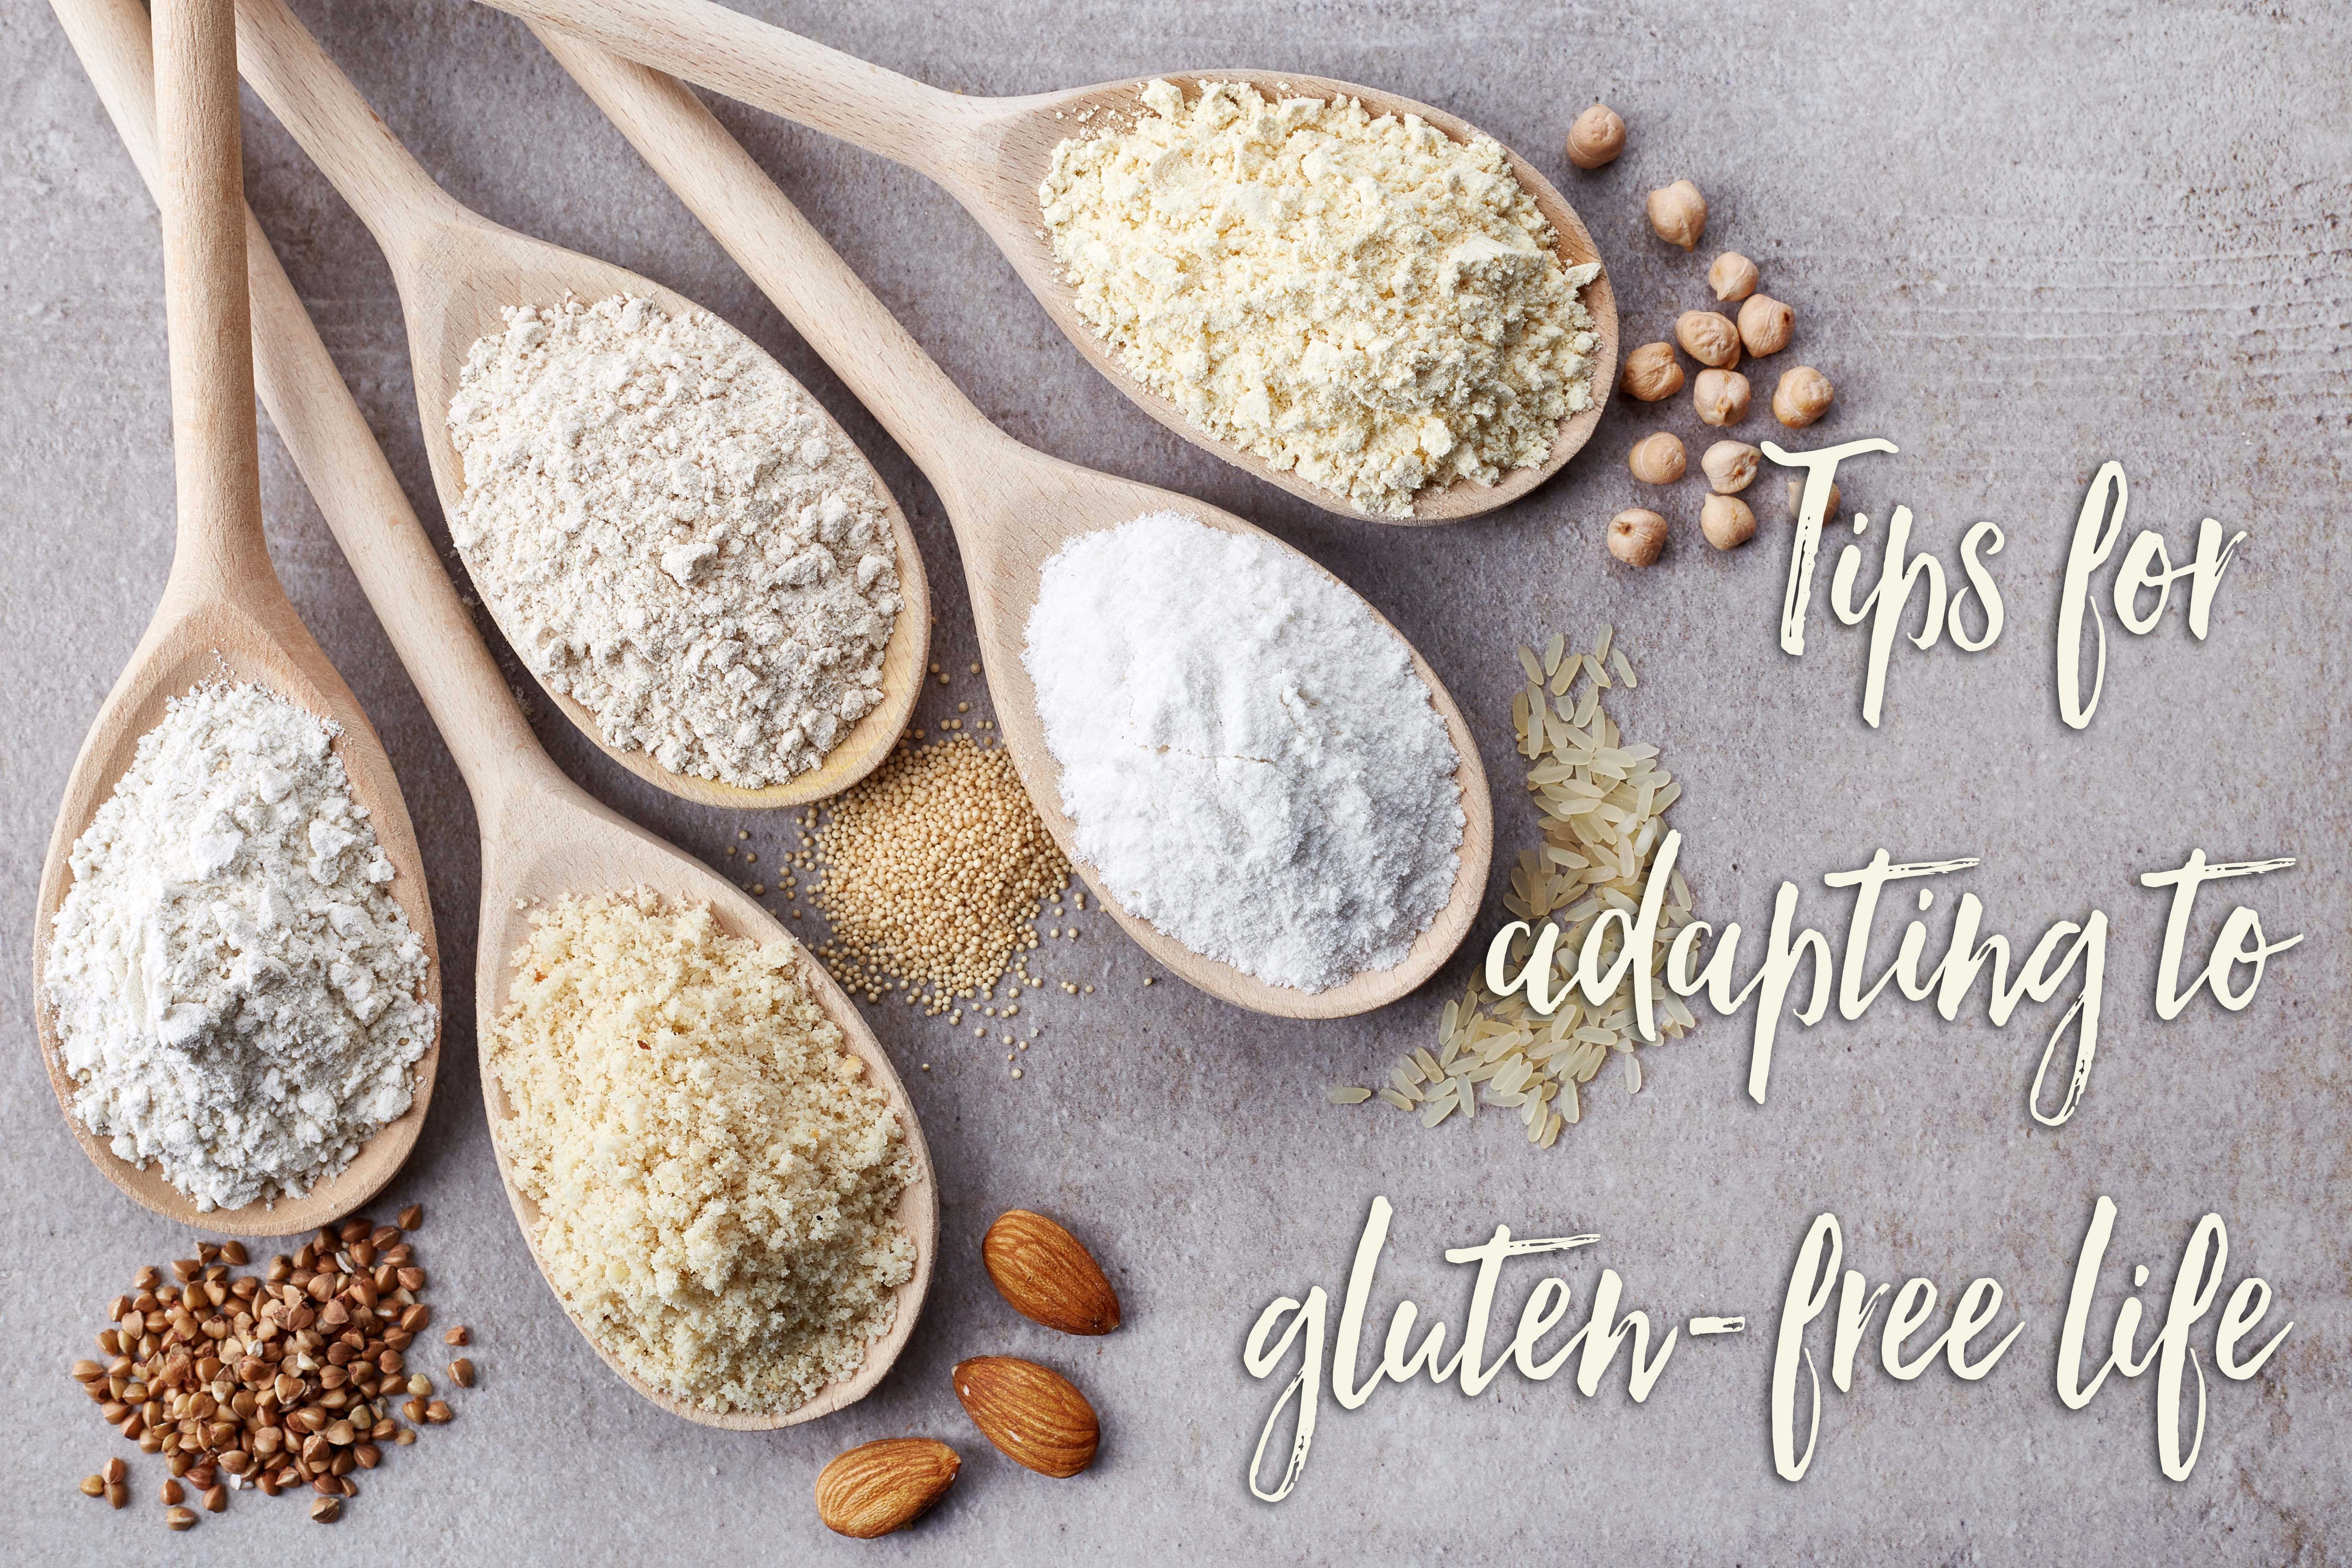 Top tips for adapting to a gluten-free lifestyle